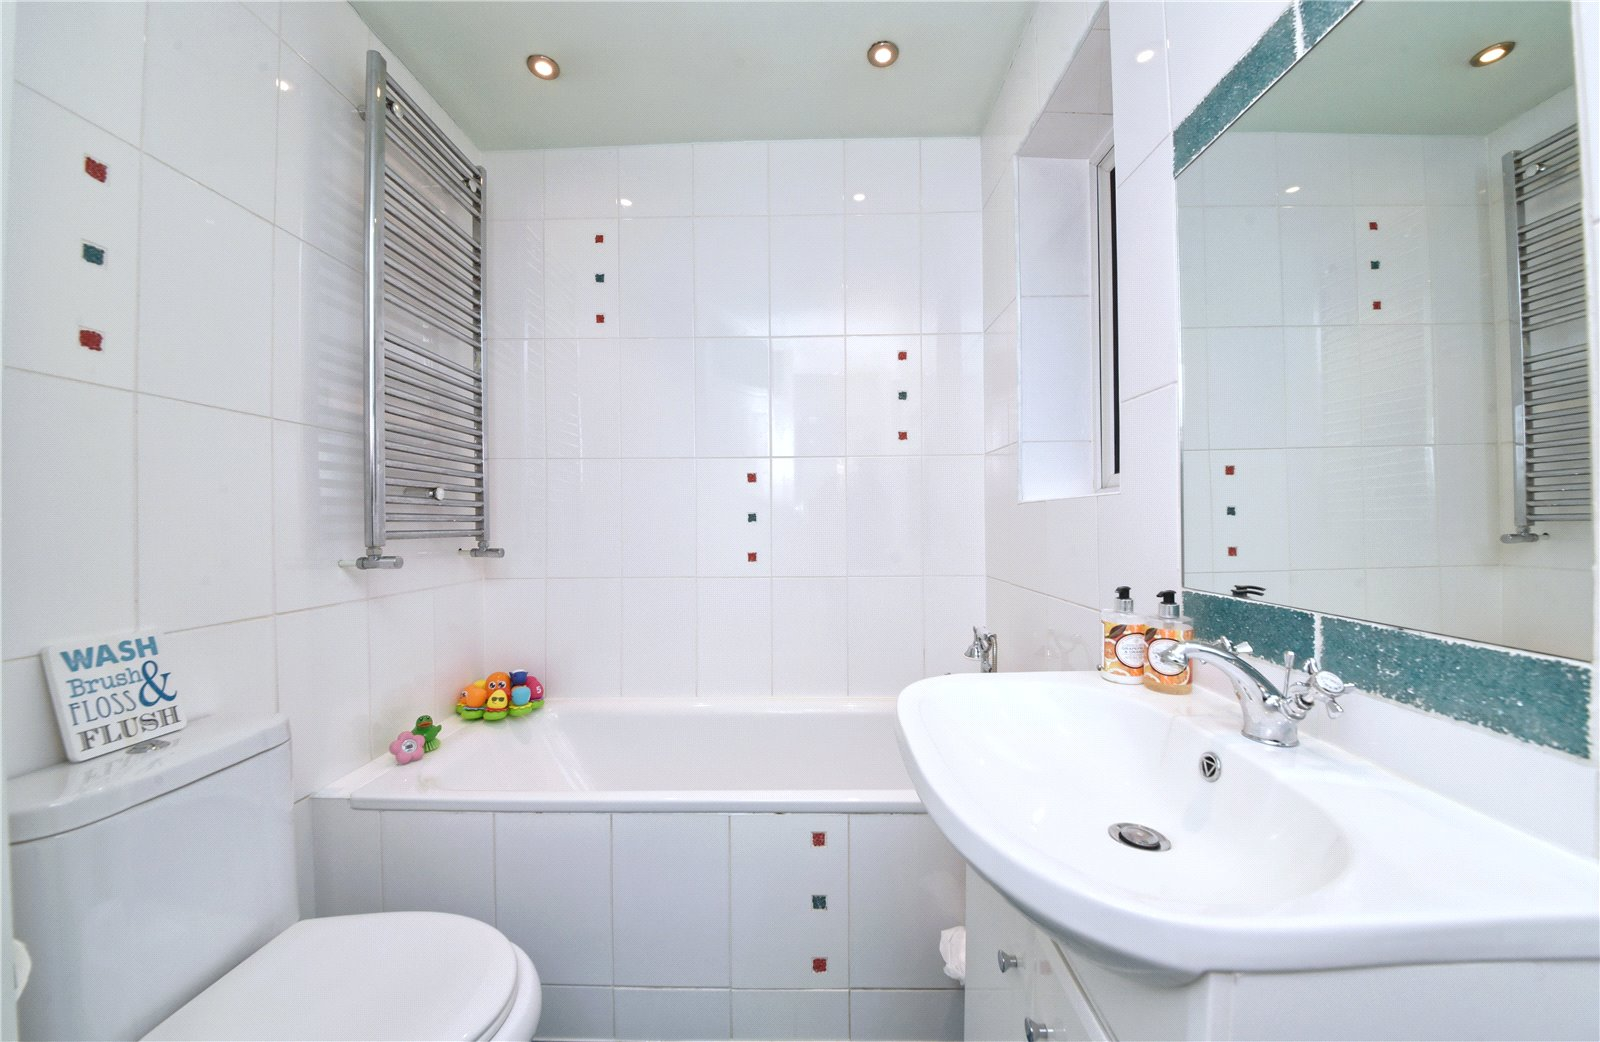 3 bed house for sale in Edgware, HA8 8XT 2